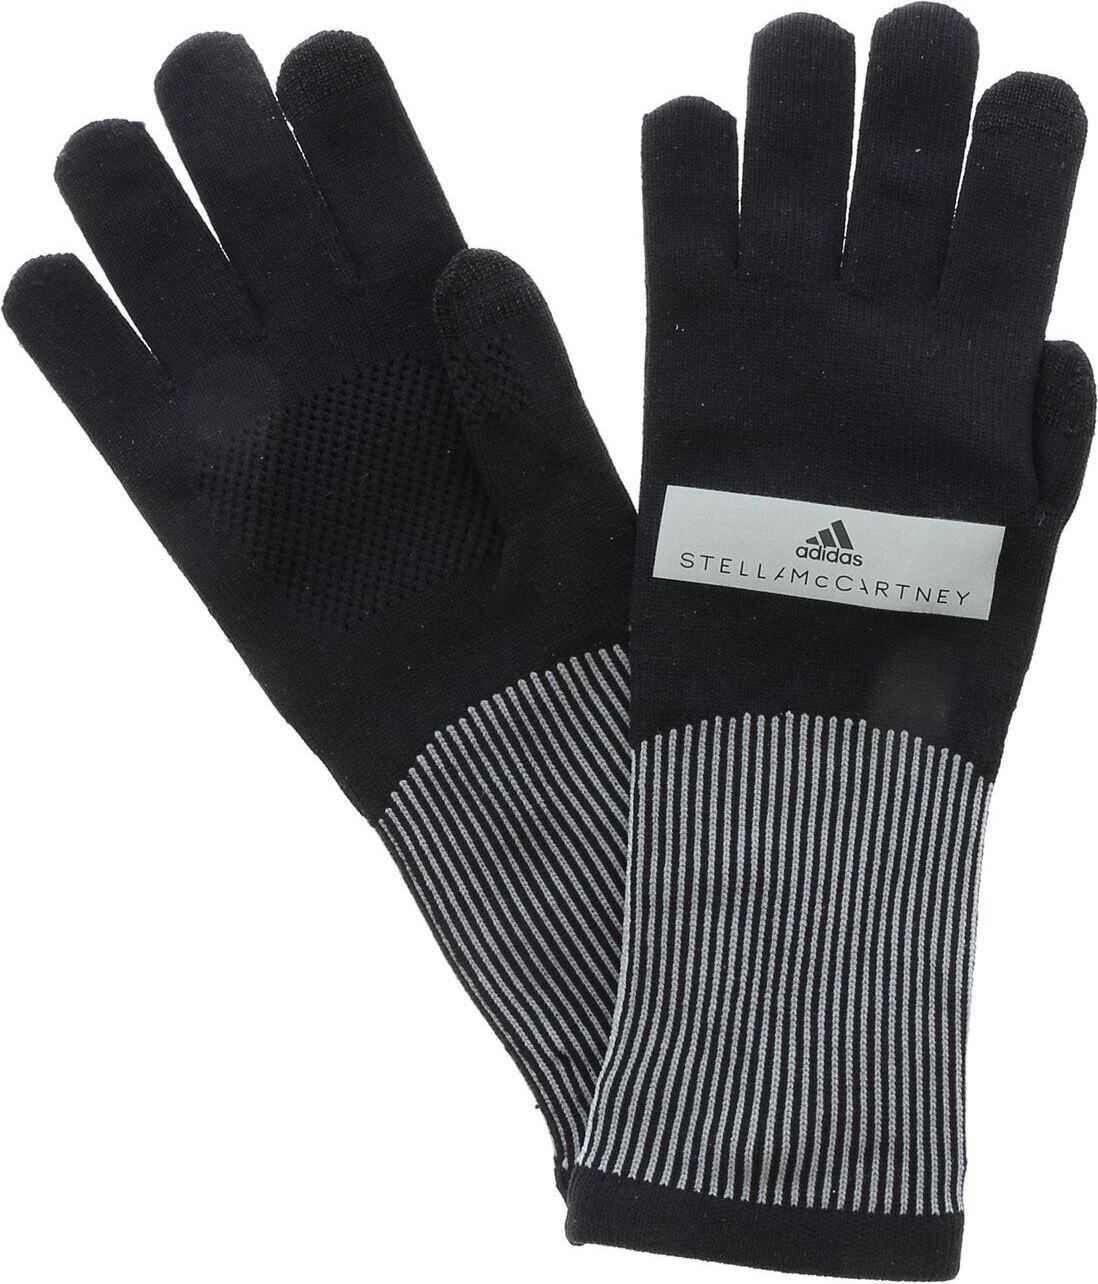 adidas by Stella McCartney Run Gloves In Black And Gray Black